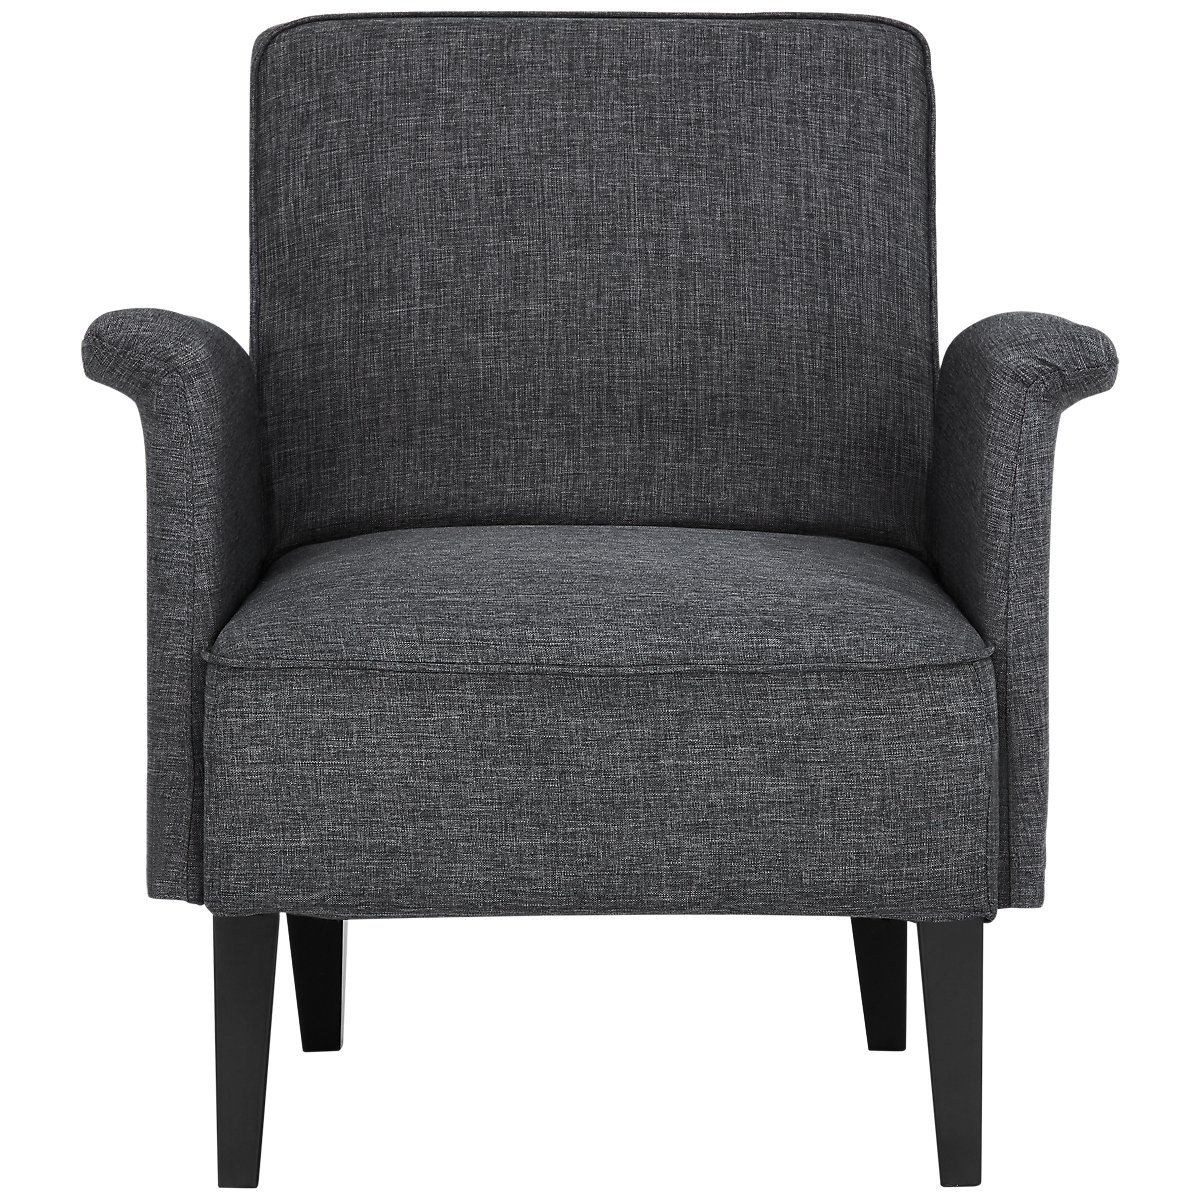 nigel dark gray accent chair view larger. city furniture nigel dark gray accent chair